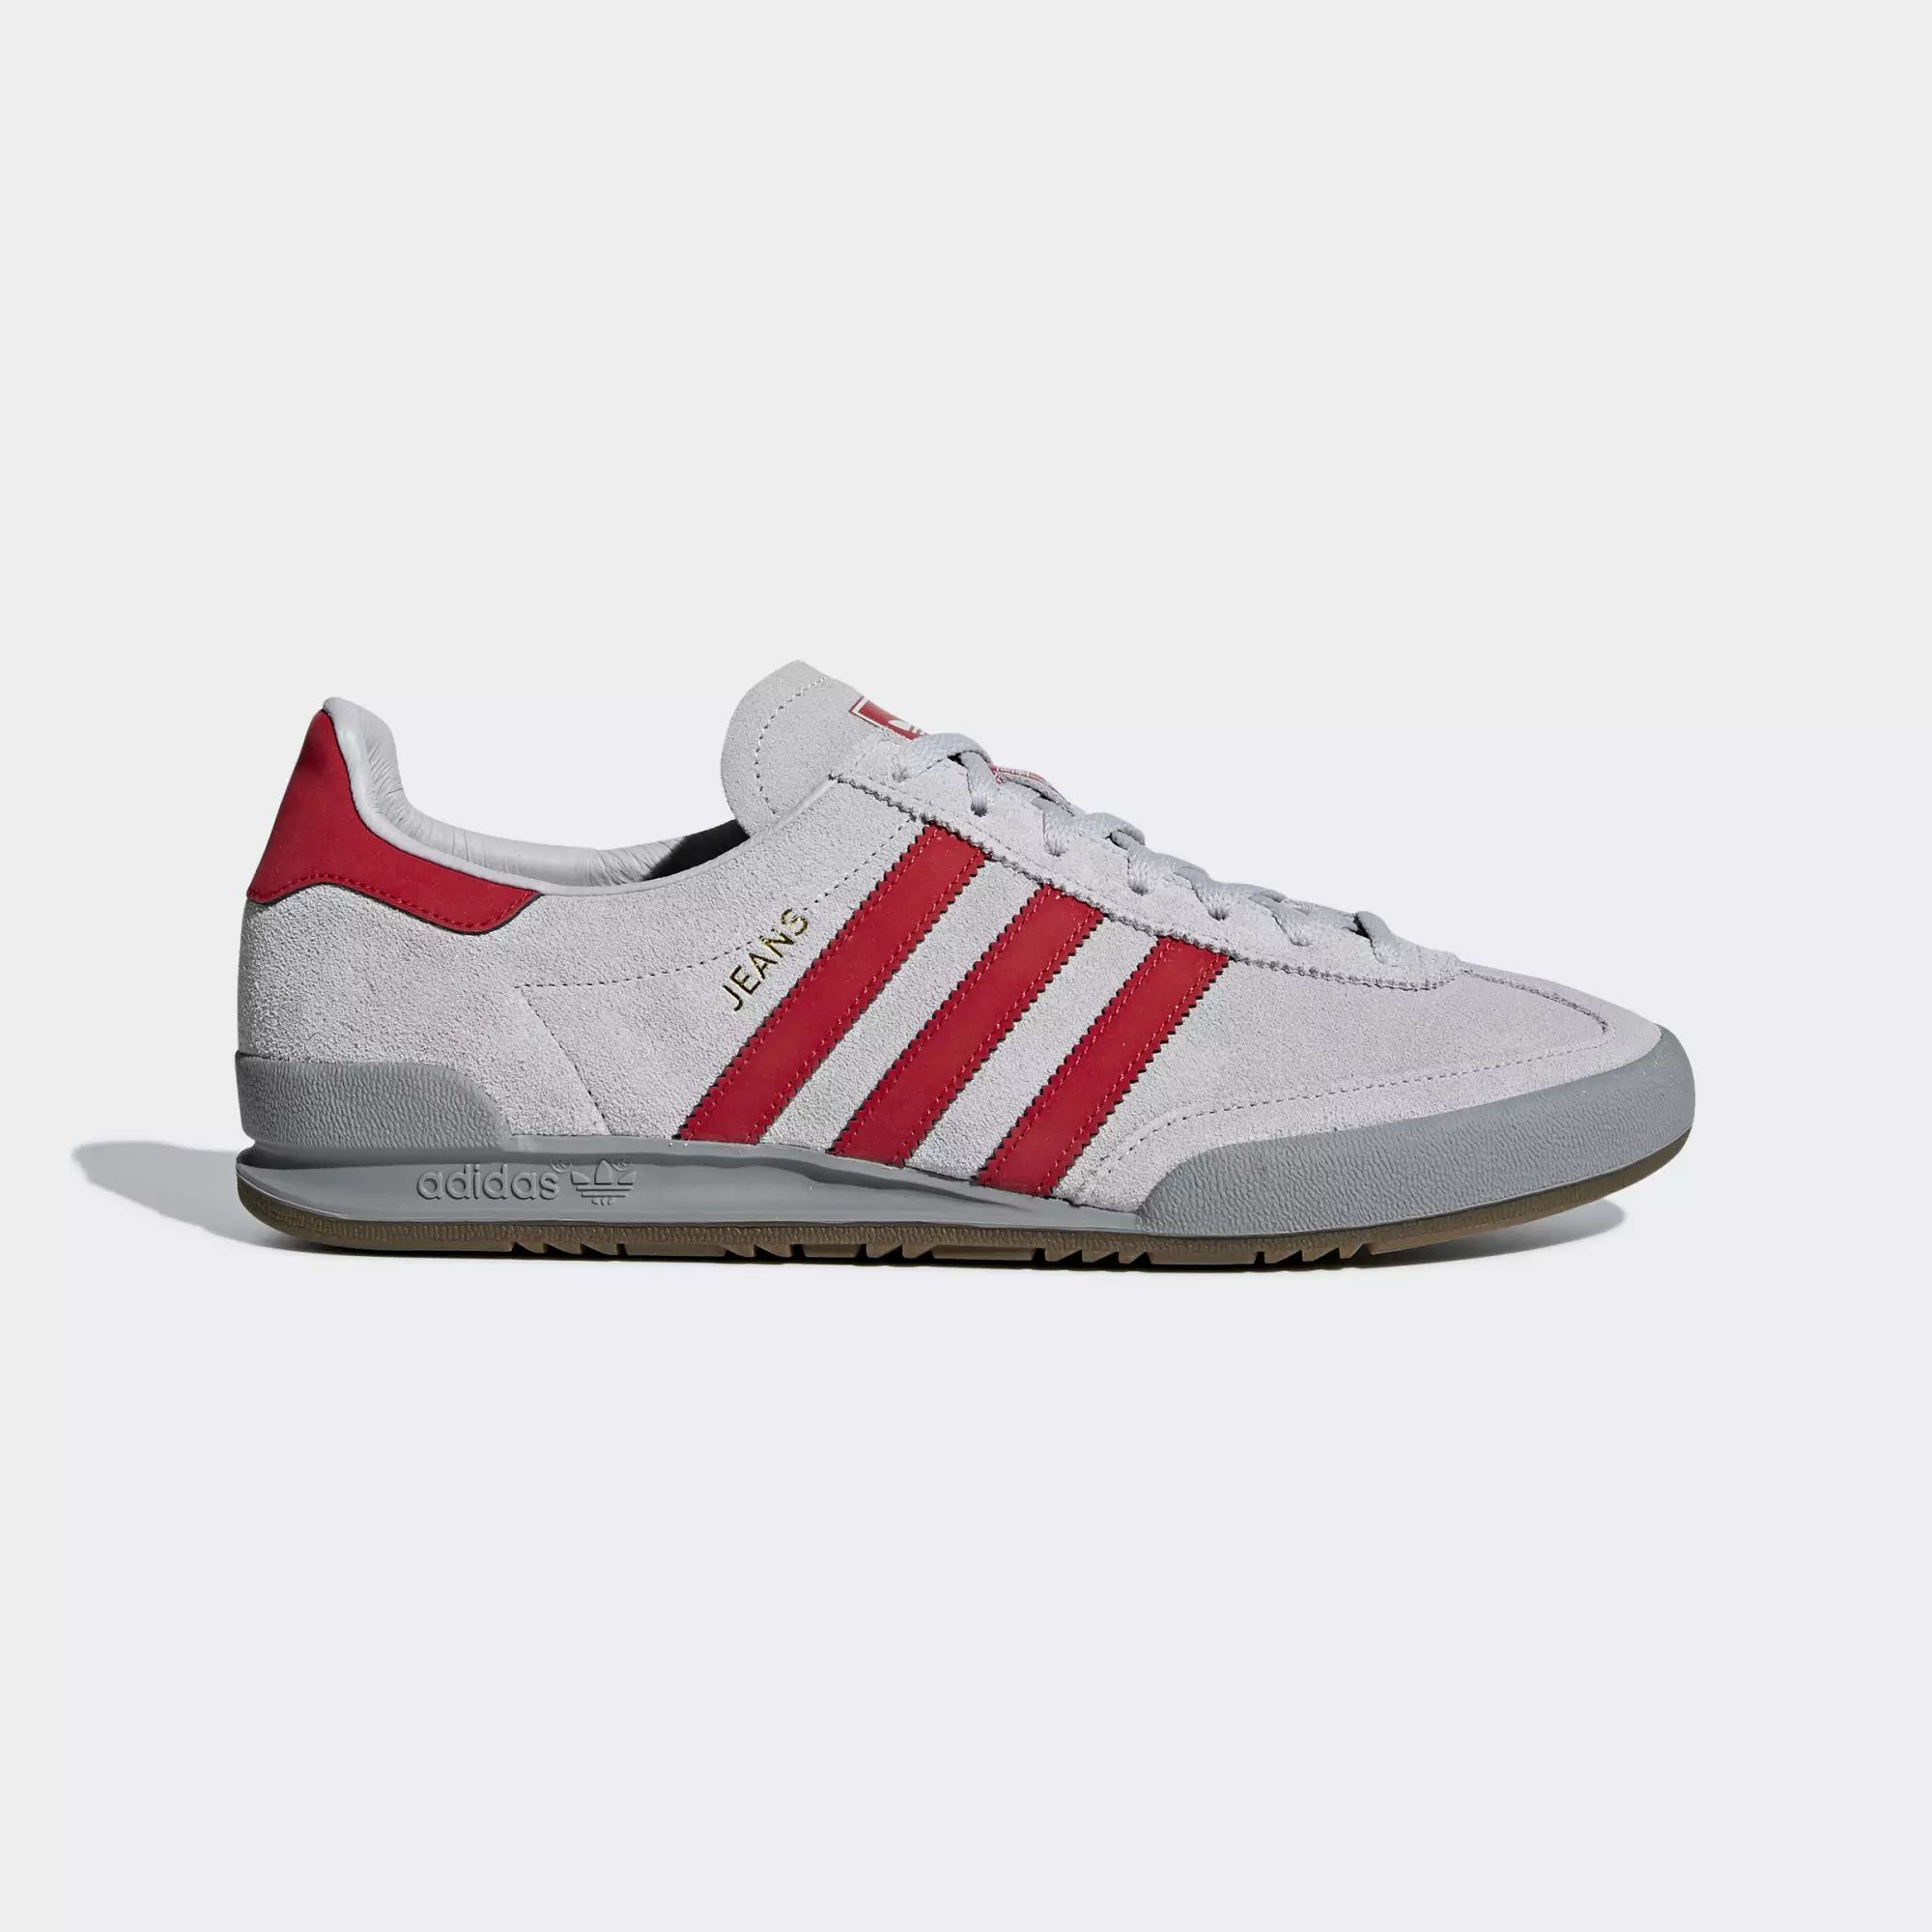 Shoes Adidas Two Grey SolidVintage Jeans Ch Scarlet TJ3lcFK1